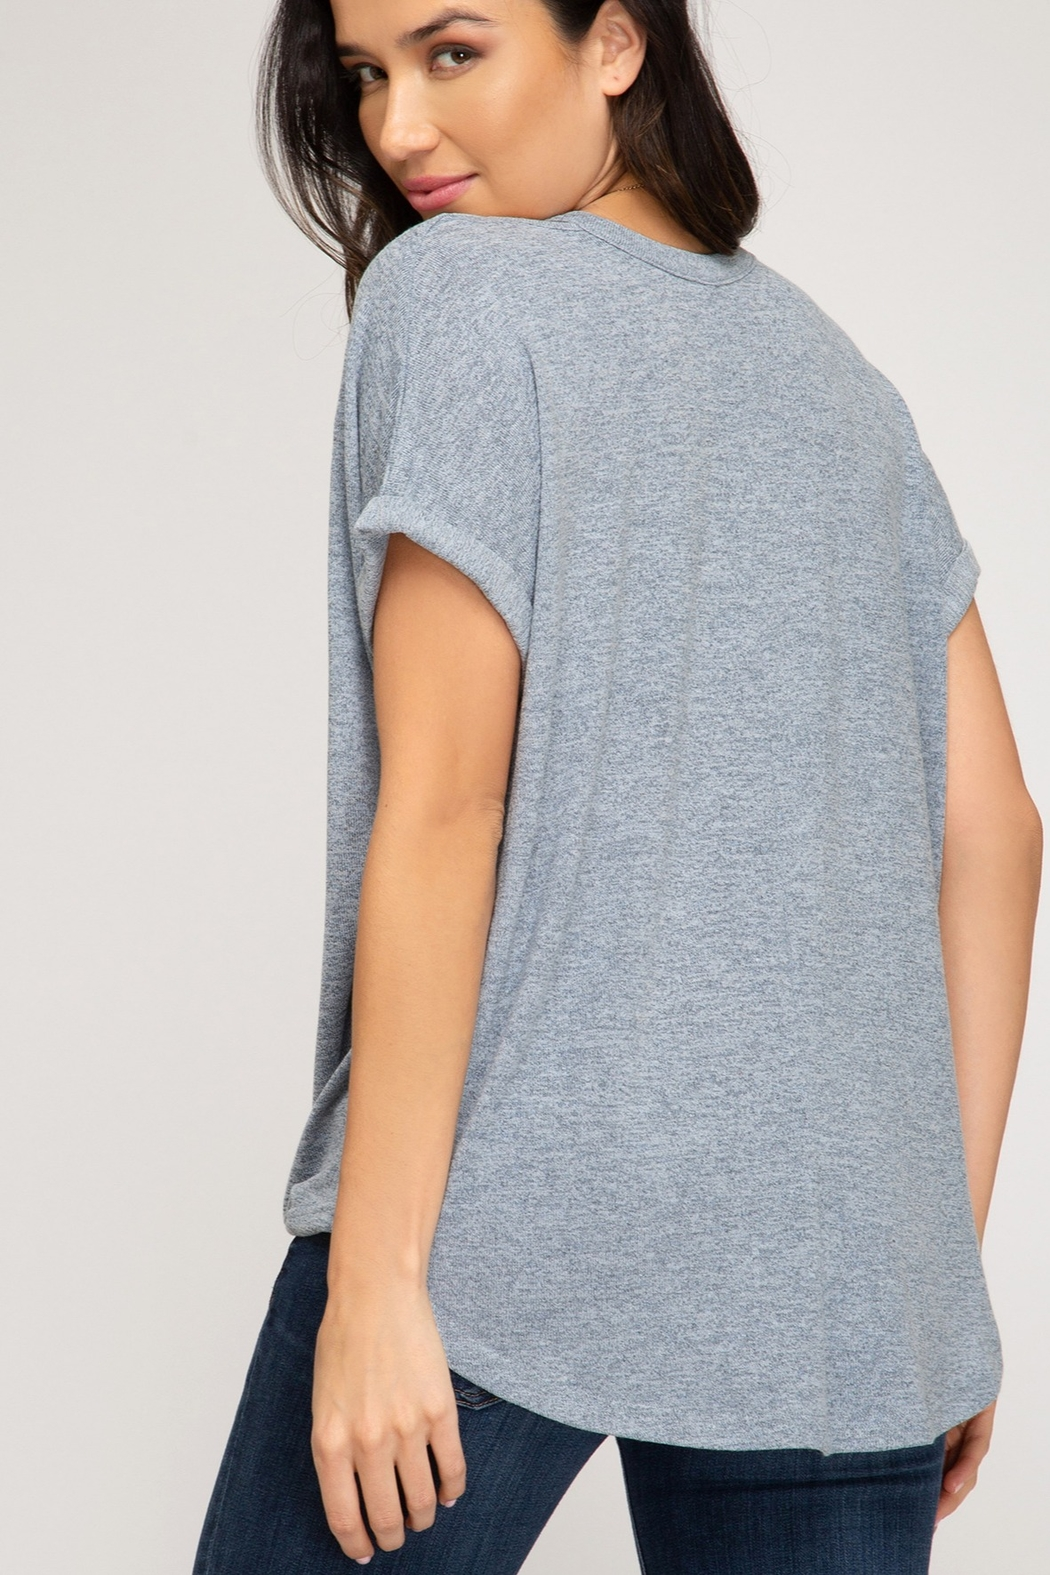 She and Sky Surpliced Top With Neck Cutouts - Front Full Image